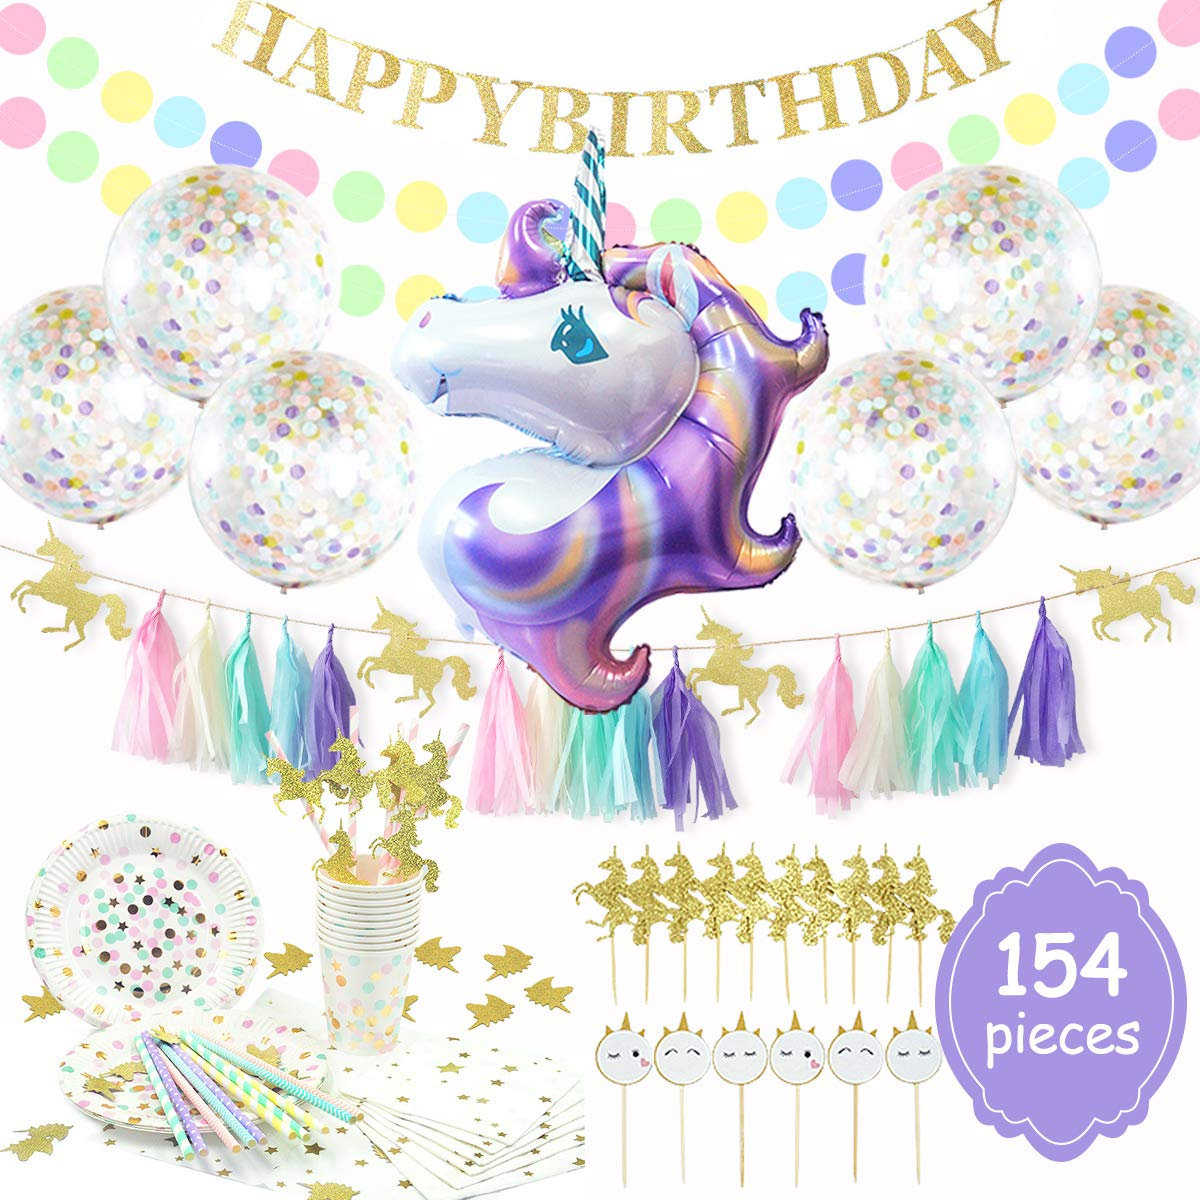 NICROLANDEE 154pcs Unicorn Party Supplies Serves 20 Purple Unicorn Foil Balloon Disposable Biodegradable Paper Tableware Tissue Party Decoration Kit Gold Glitter Happy Birthday Banner